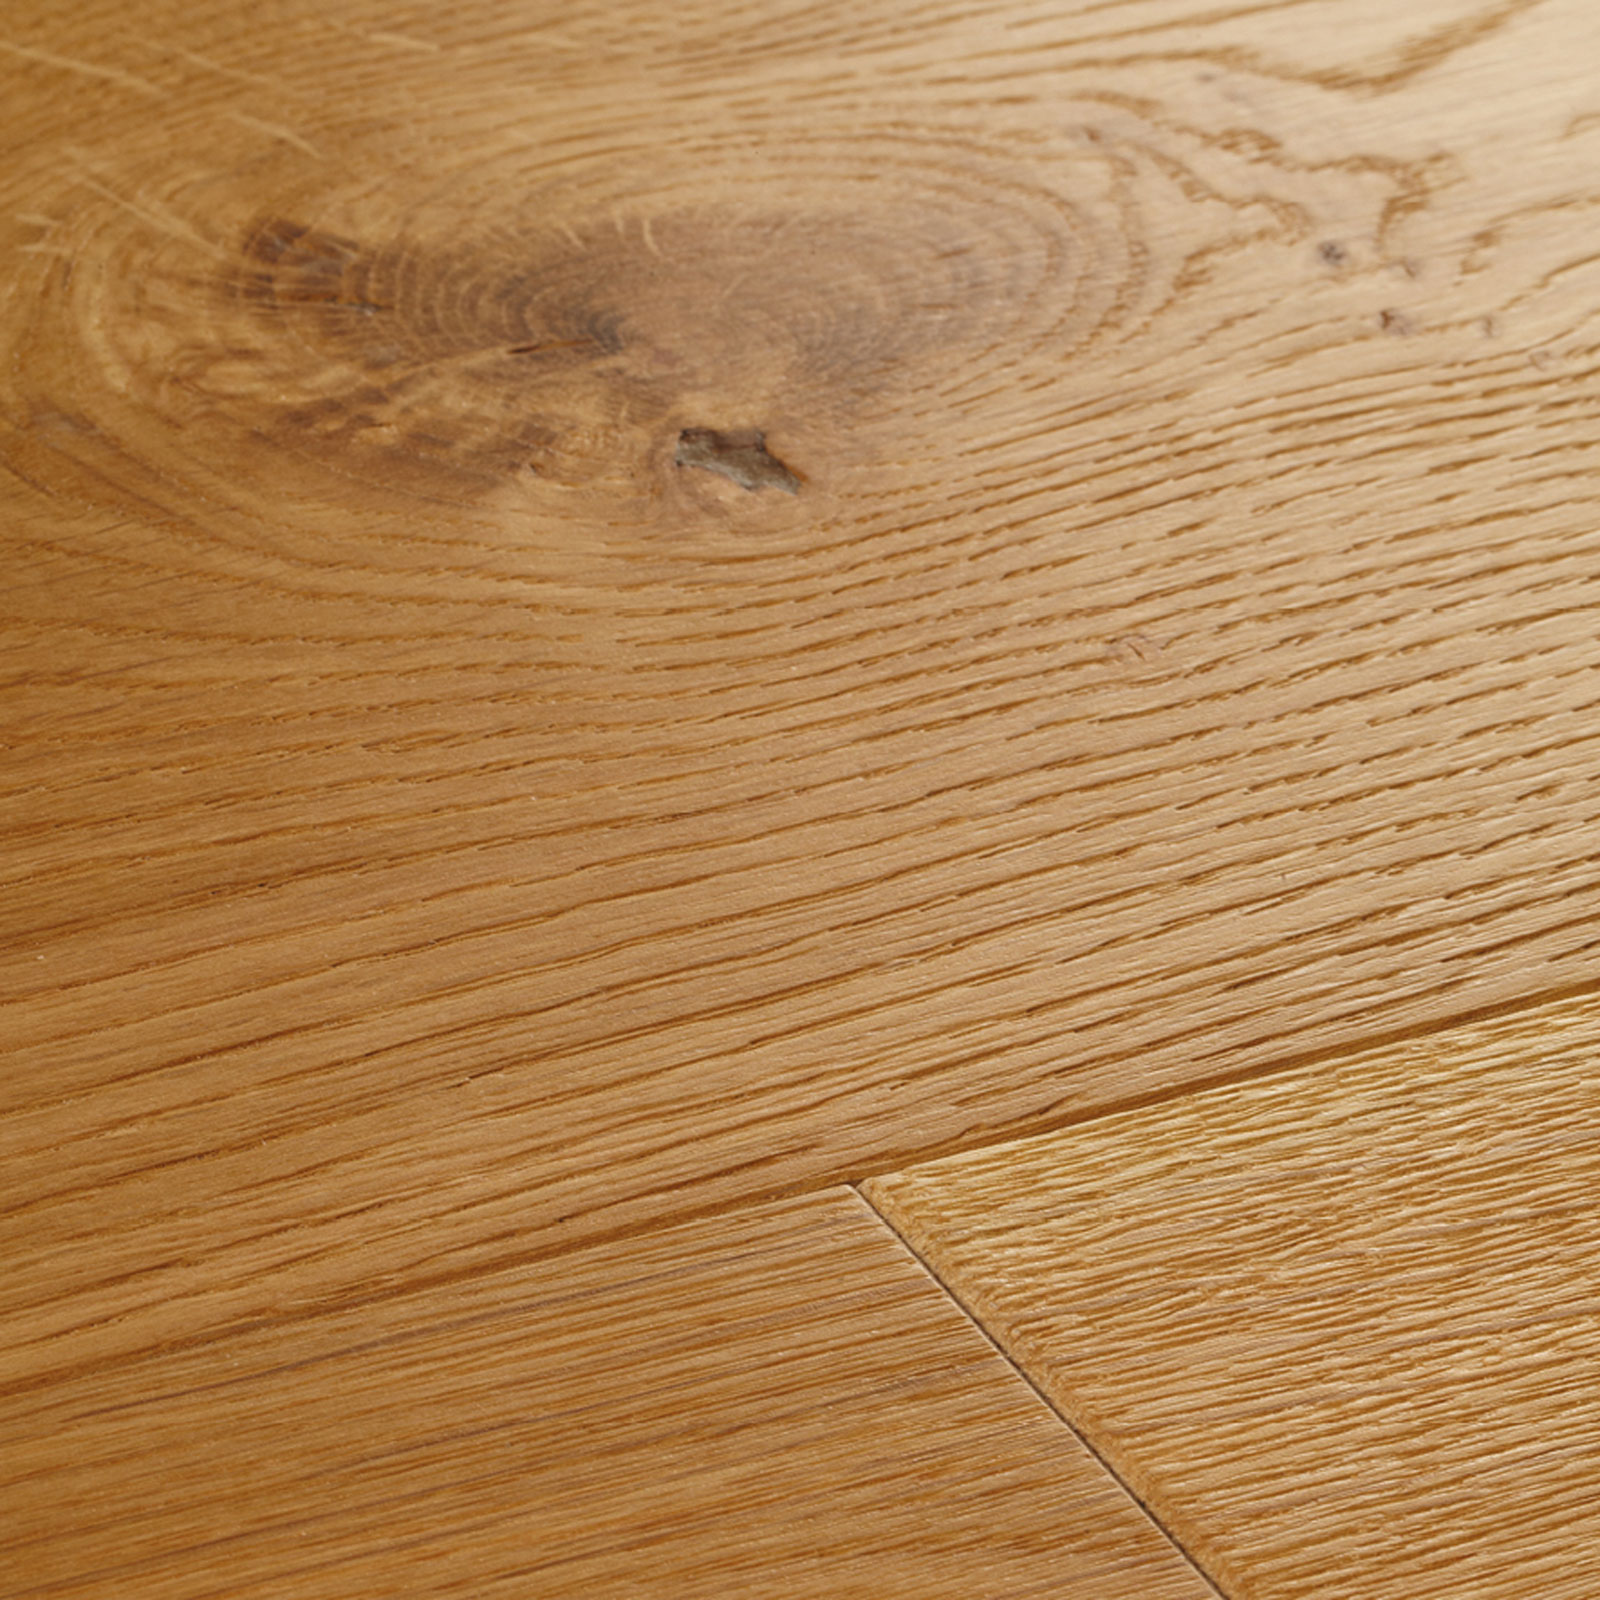 swatch-cropped-chepstow-rustic-oak-1600.jpg